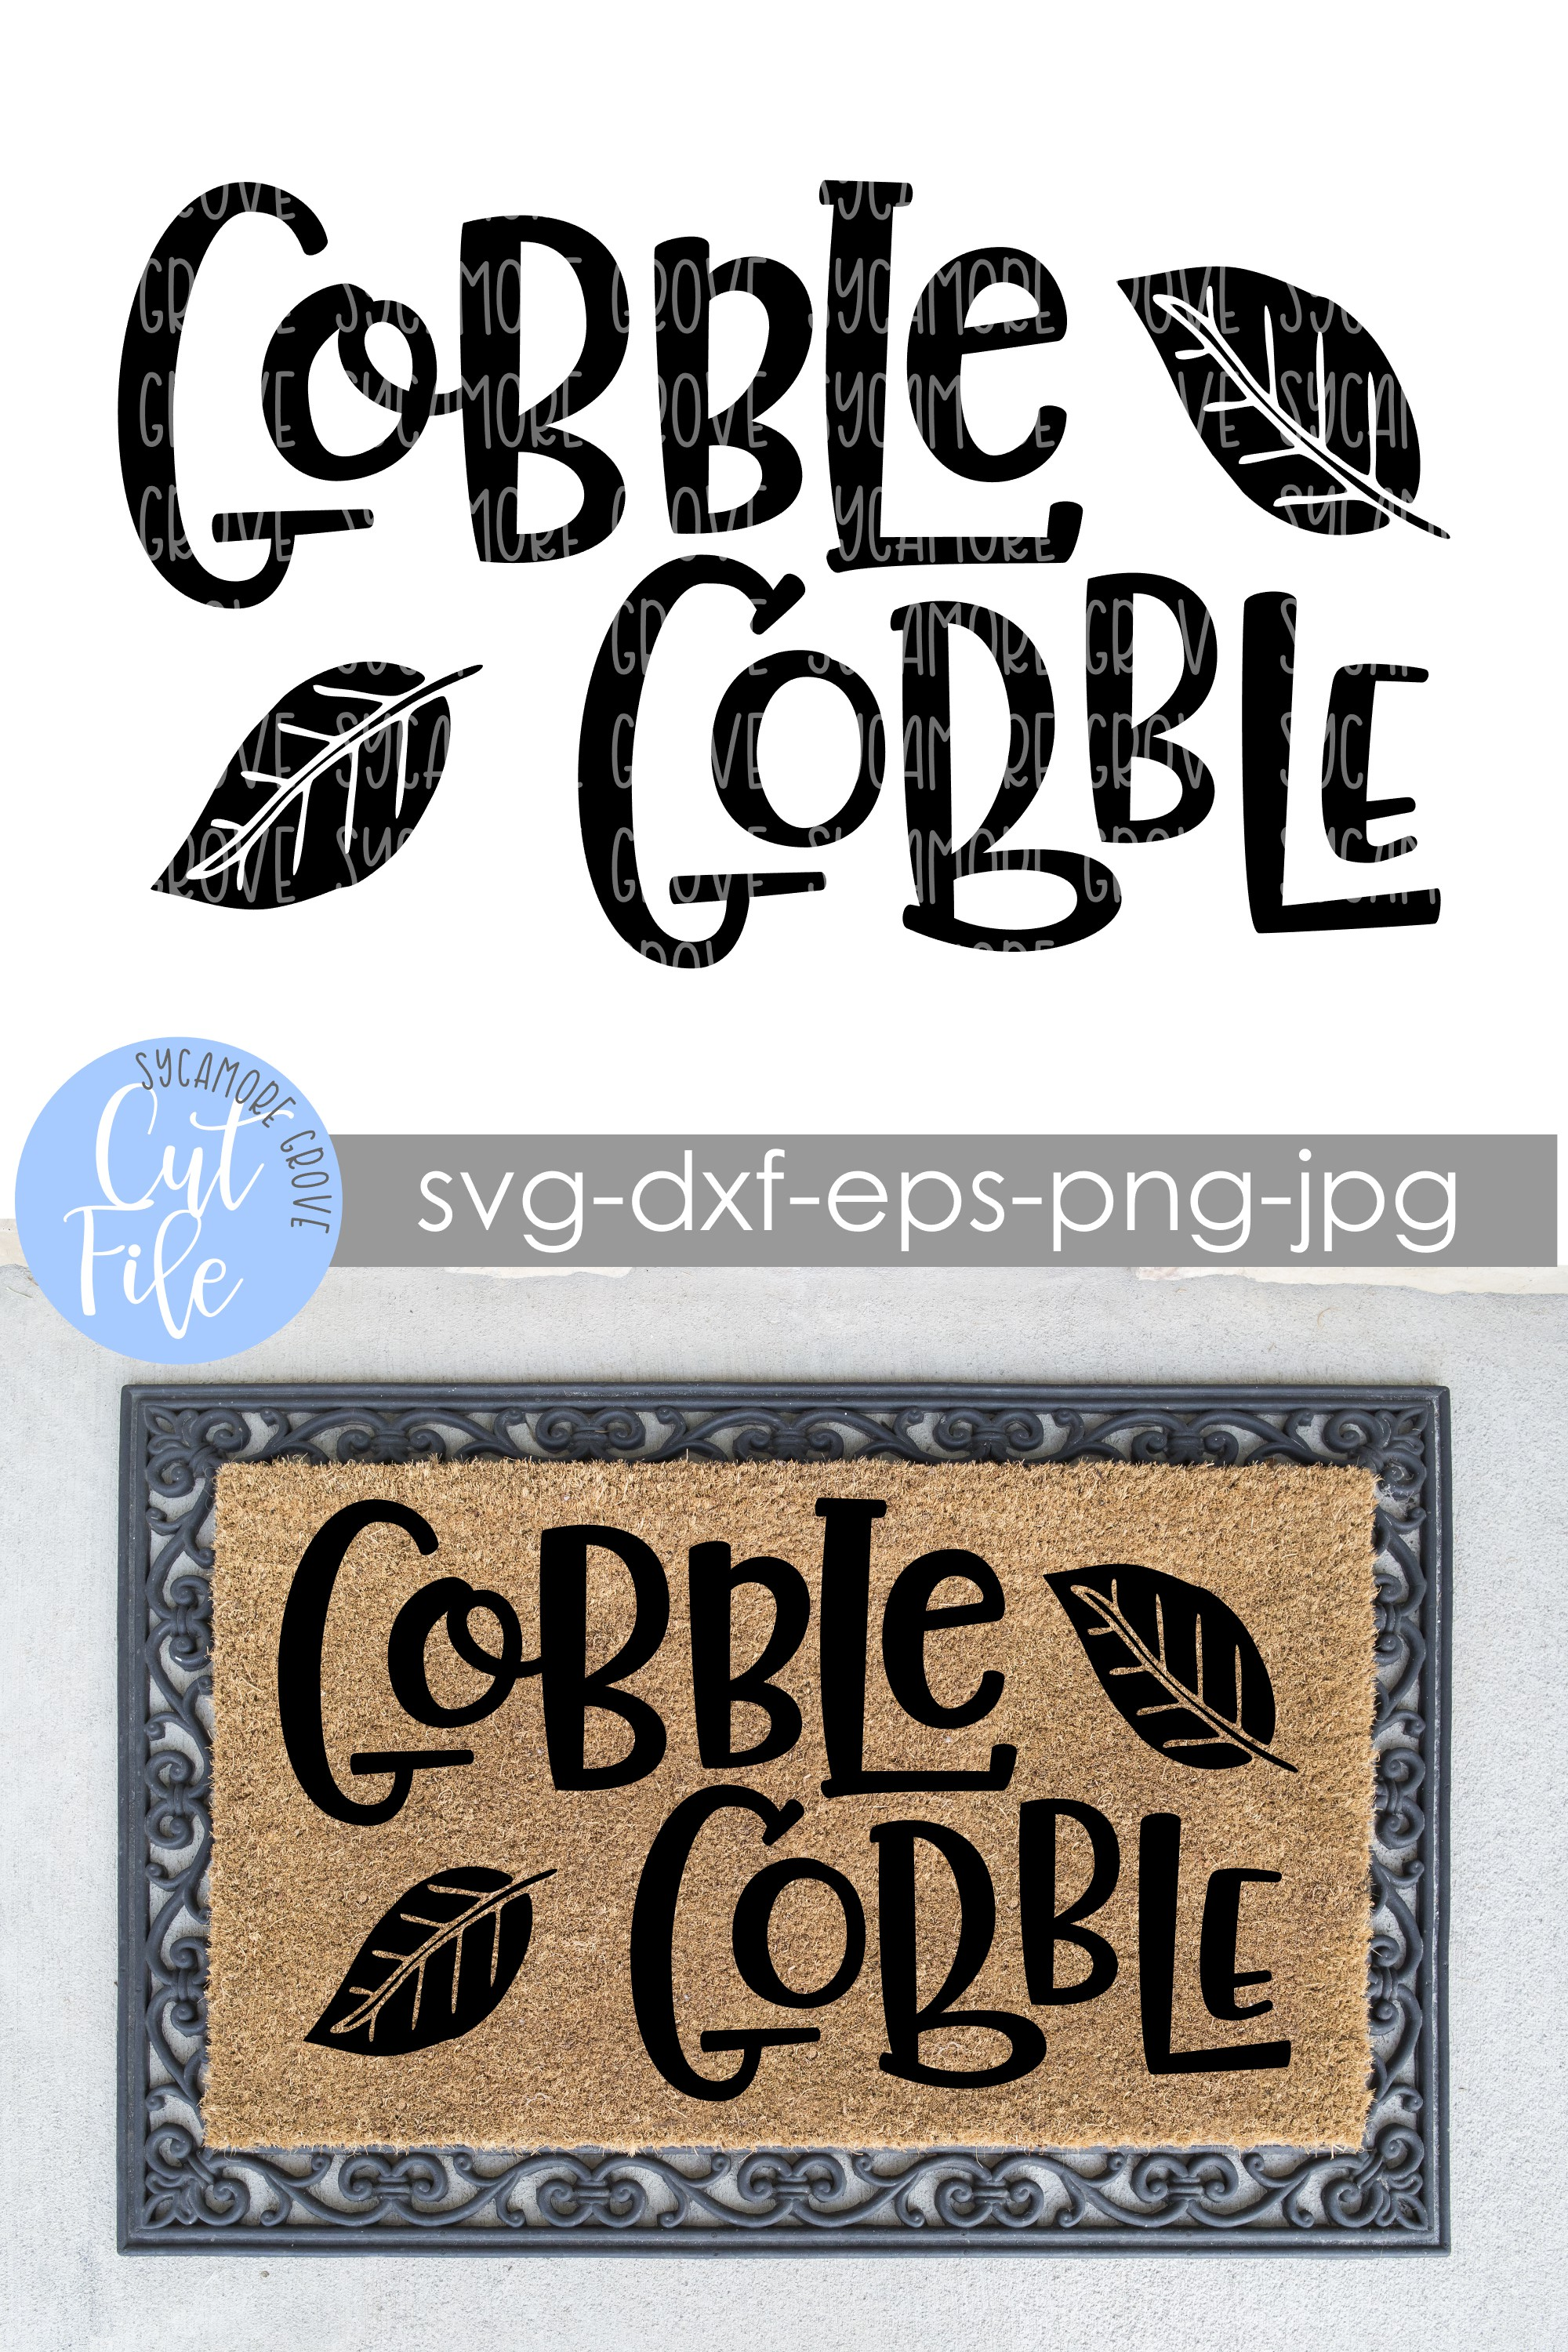 Gobble Gobble| Thanksgiving Doormat | SVG Cut File example image 3